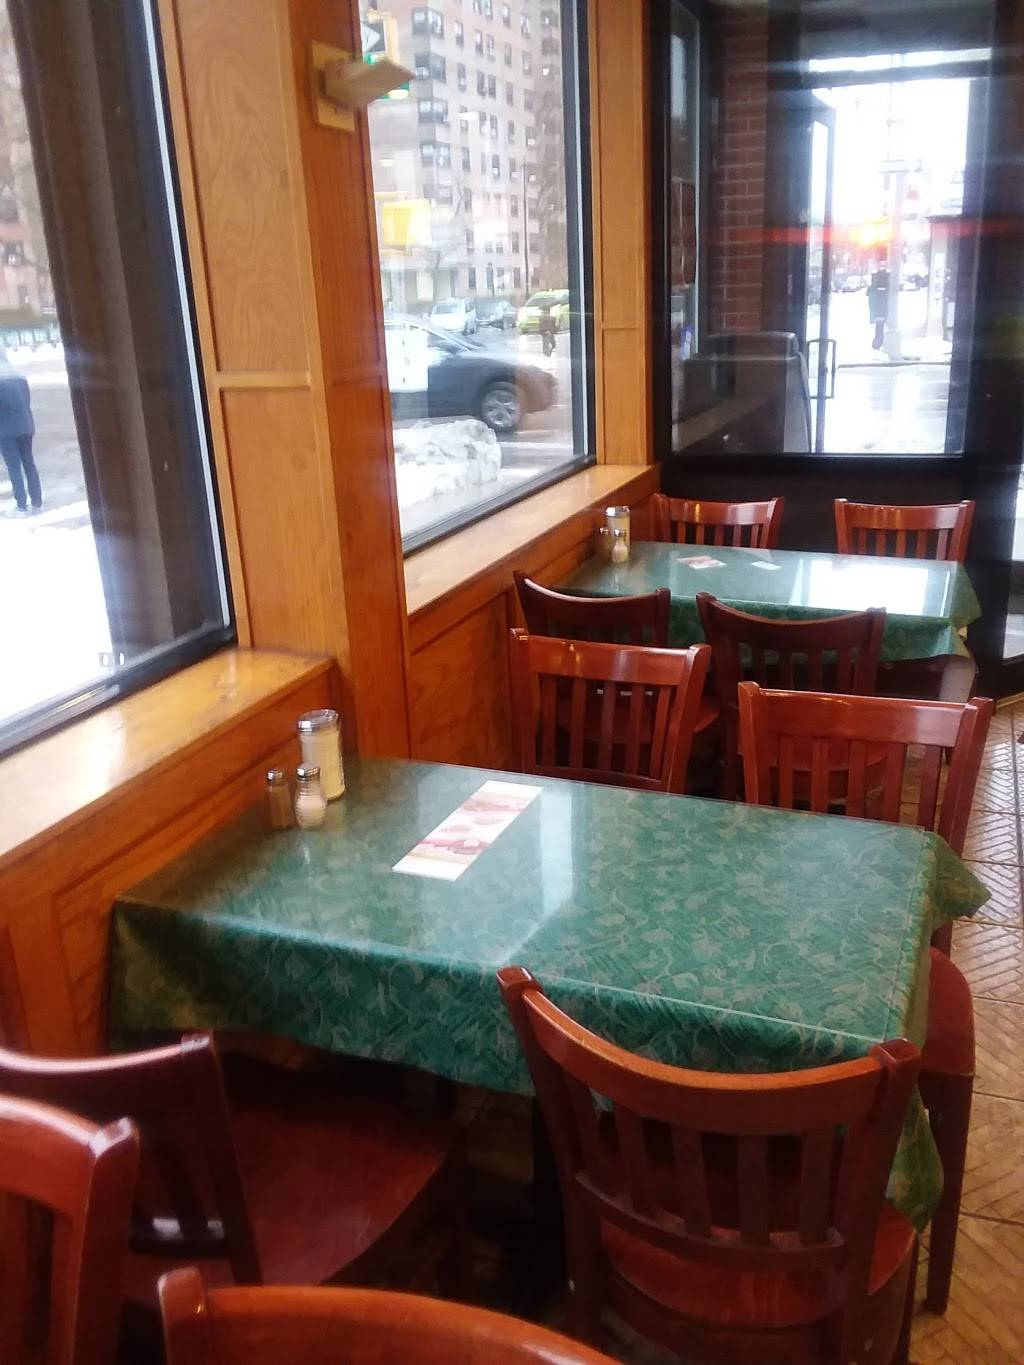 Triple A | restaurant | 2061 2nd Ave # 106, New York, NY 10029, USA | 2124106950 OR +1 212-410-6950